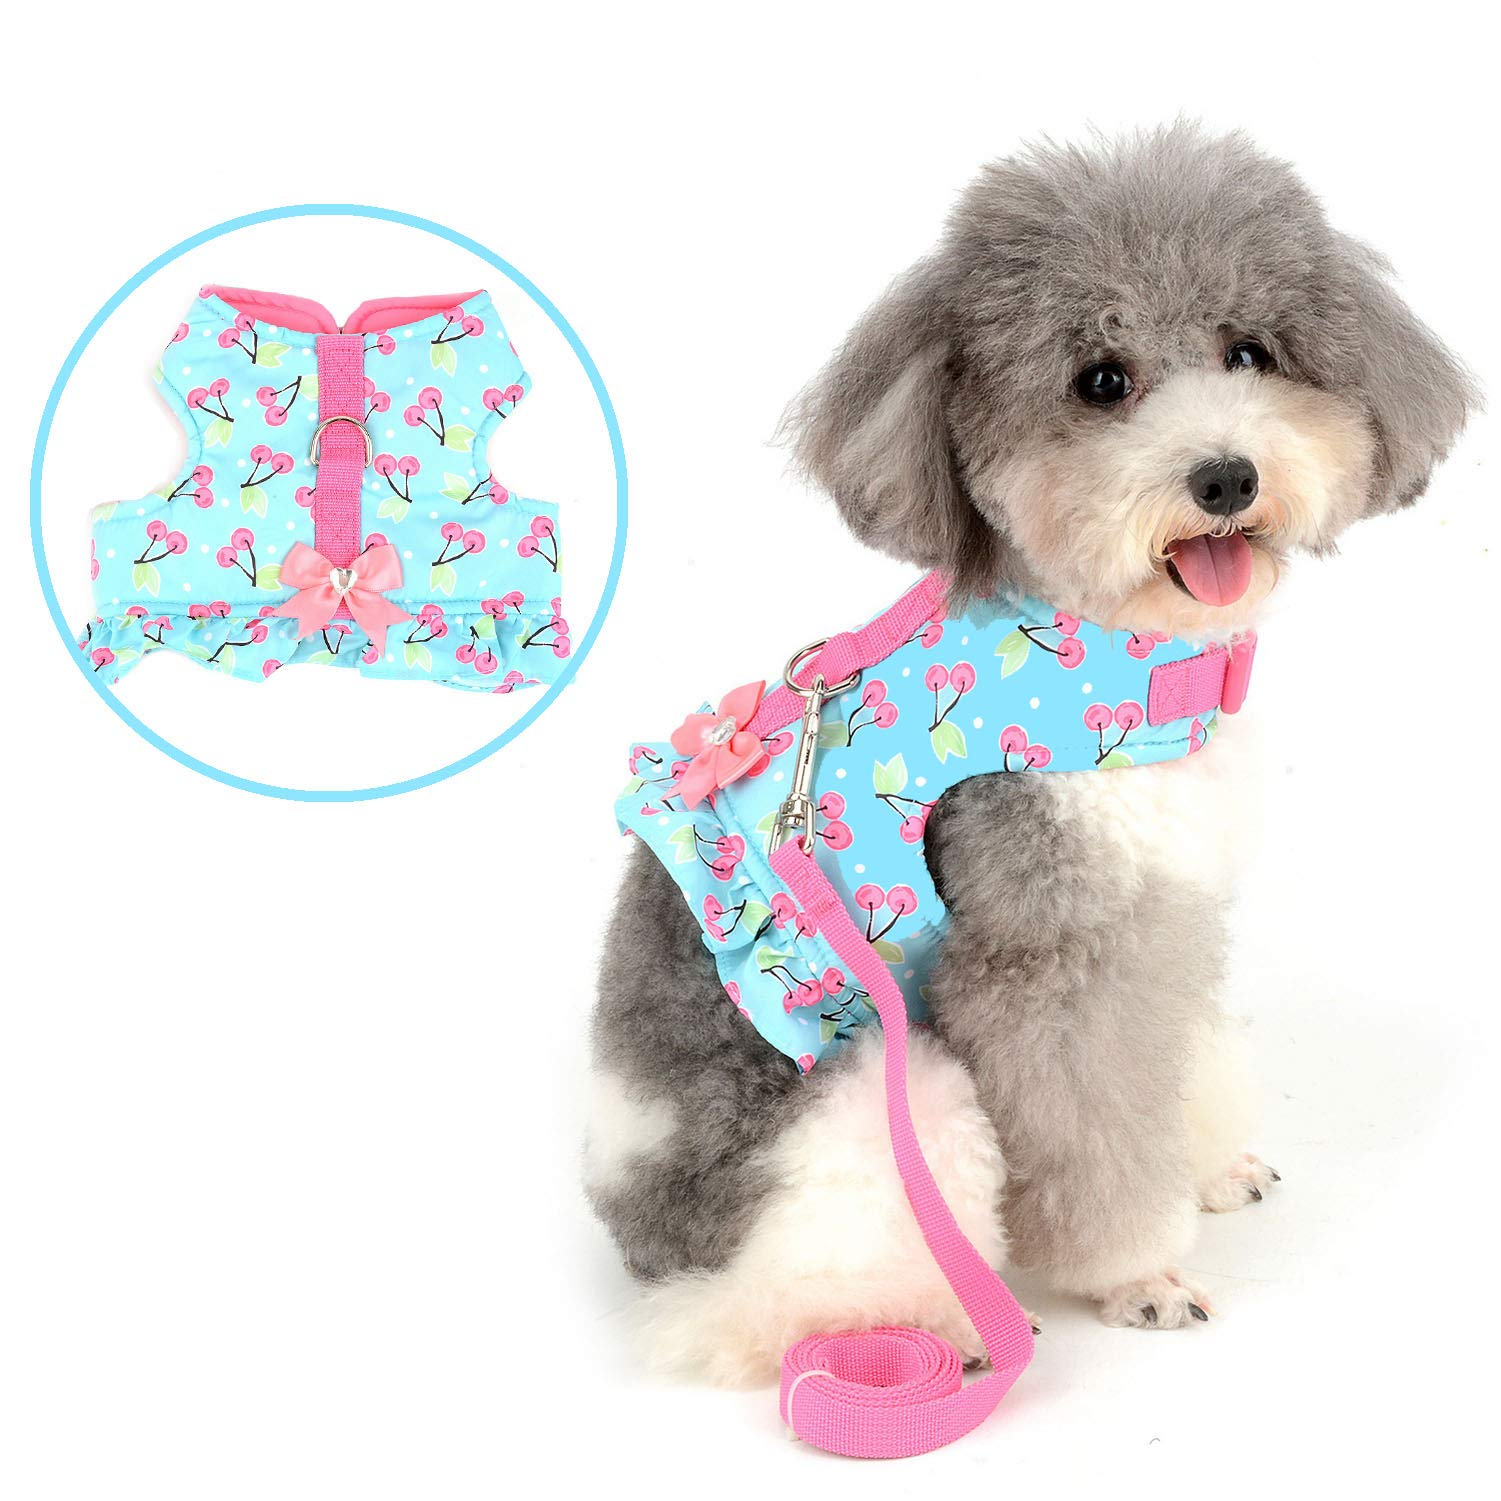 Zunea No Pull Small Dog Girl Harness Dress Escape Proof Cat Kitten Vest Harness Leash Set Step-in Soft Cotton Padded Cherry Printed Jacket Chihuahua Puppy Clothes with Bow for Walking Blue XS by Zunea